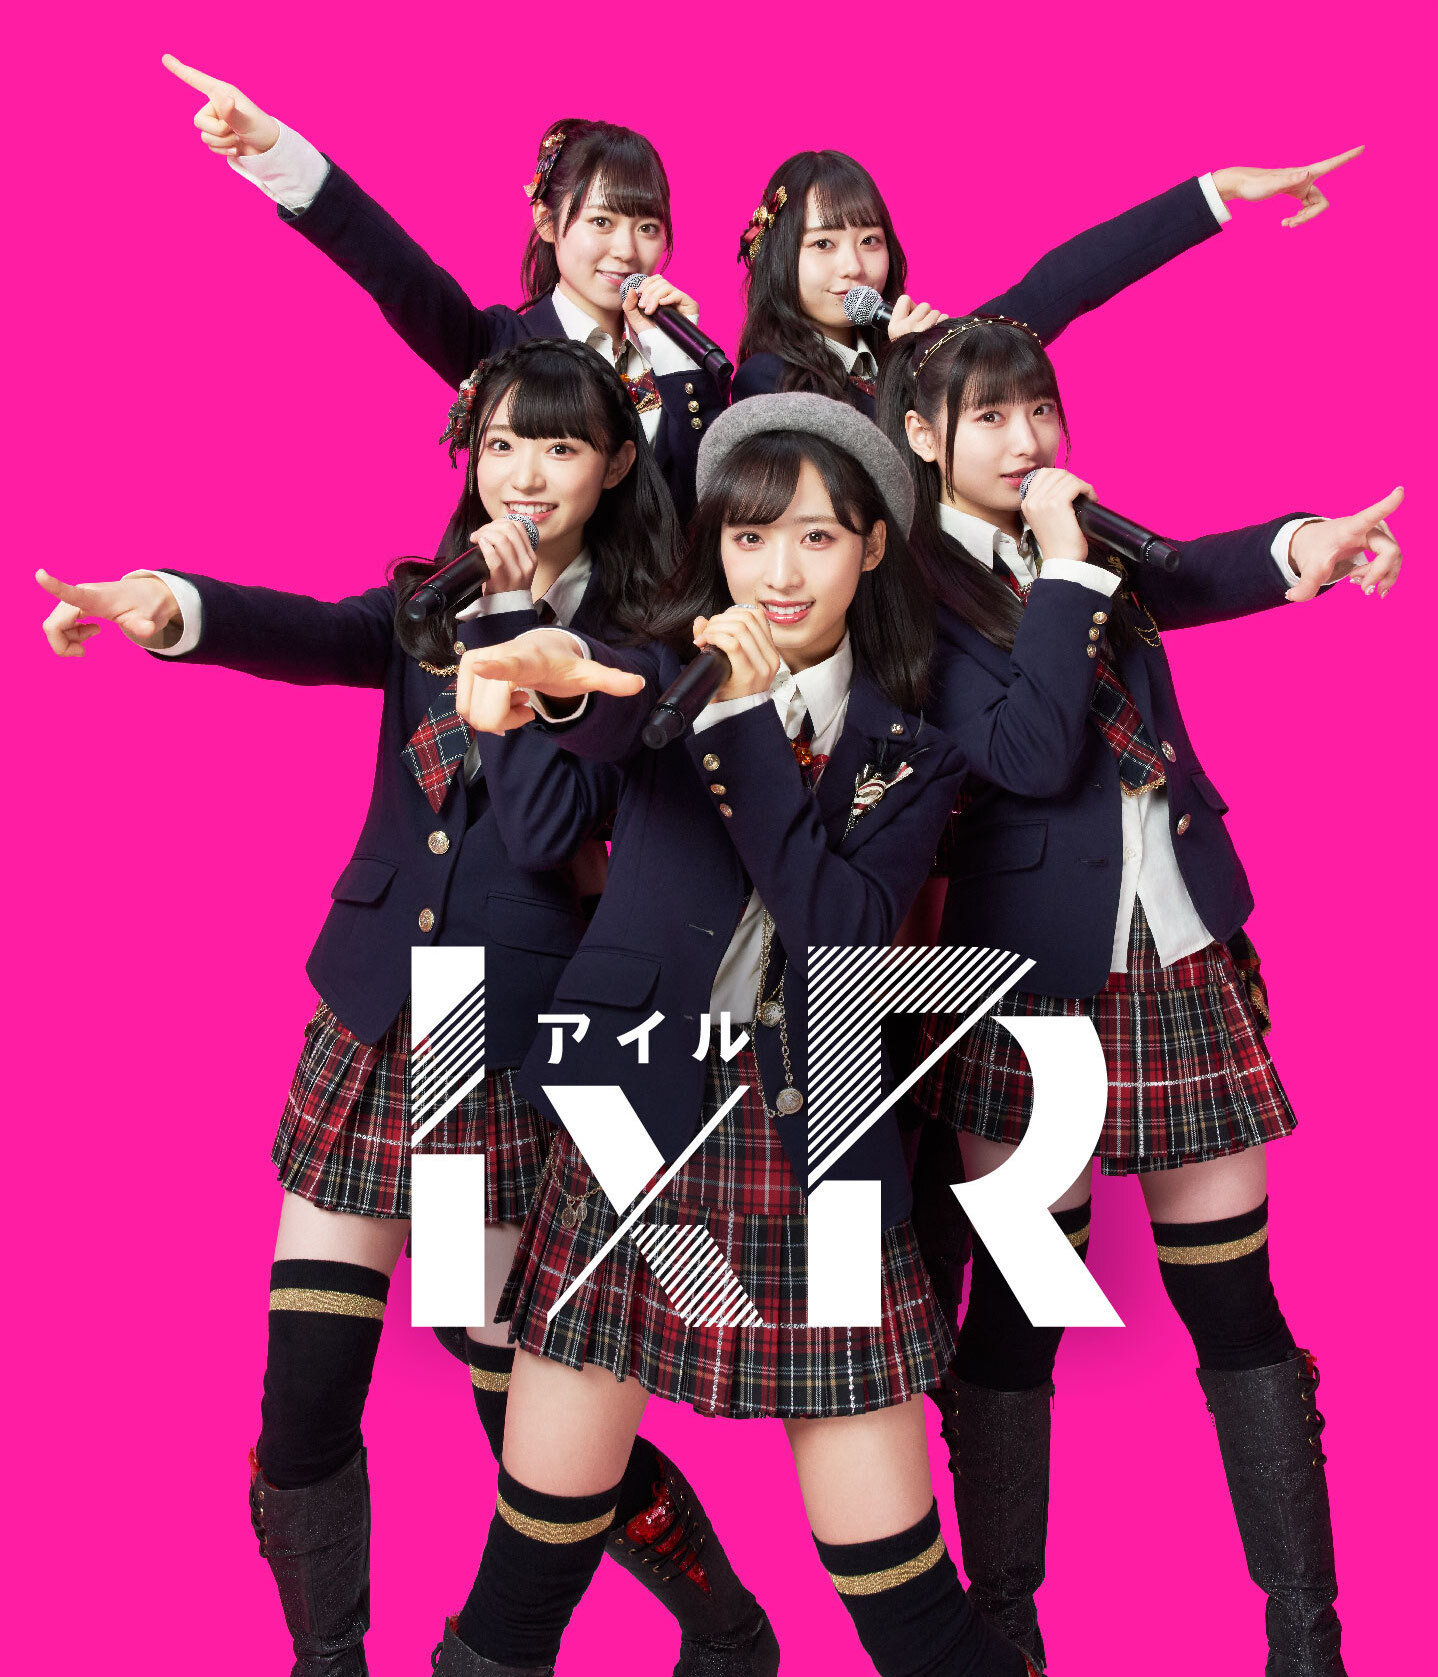 IxR(アイル) from AKB48